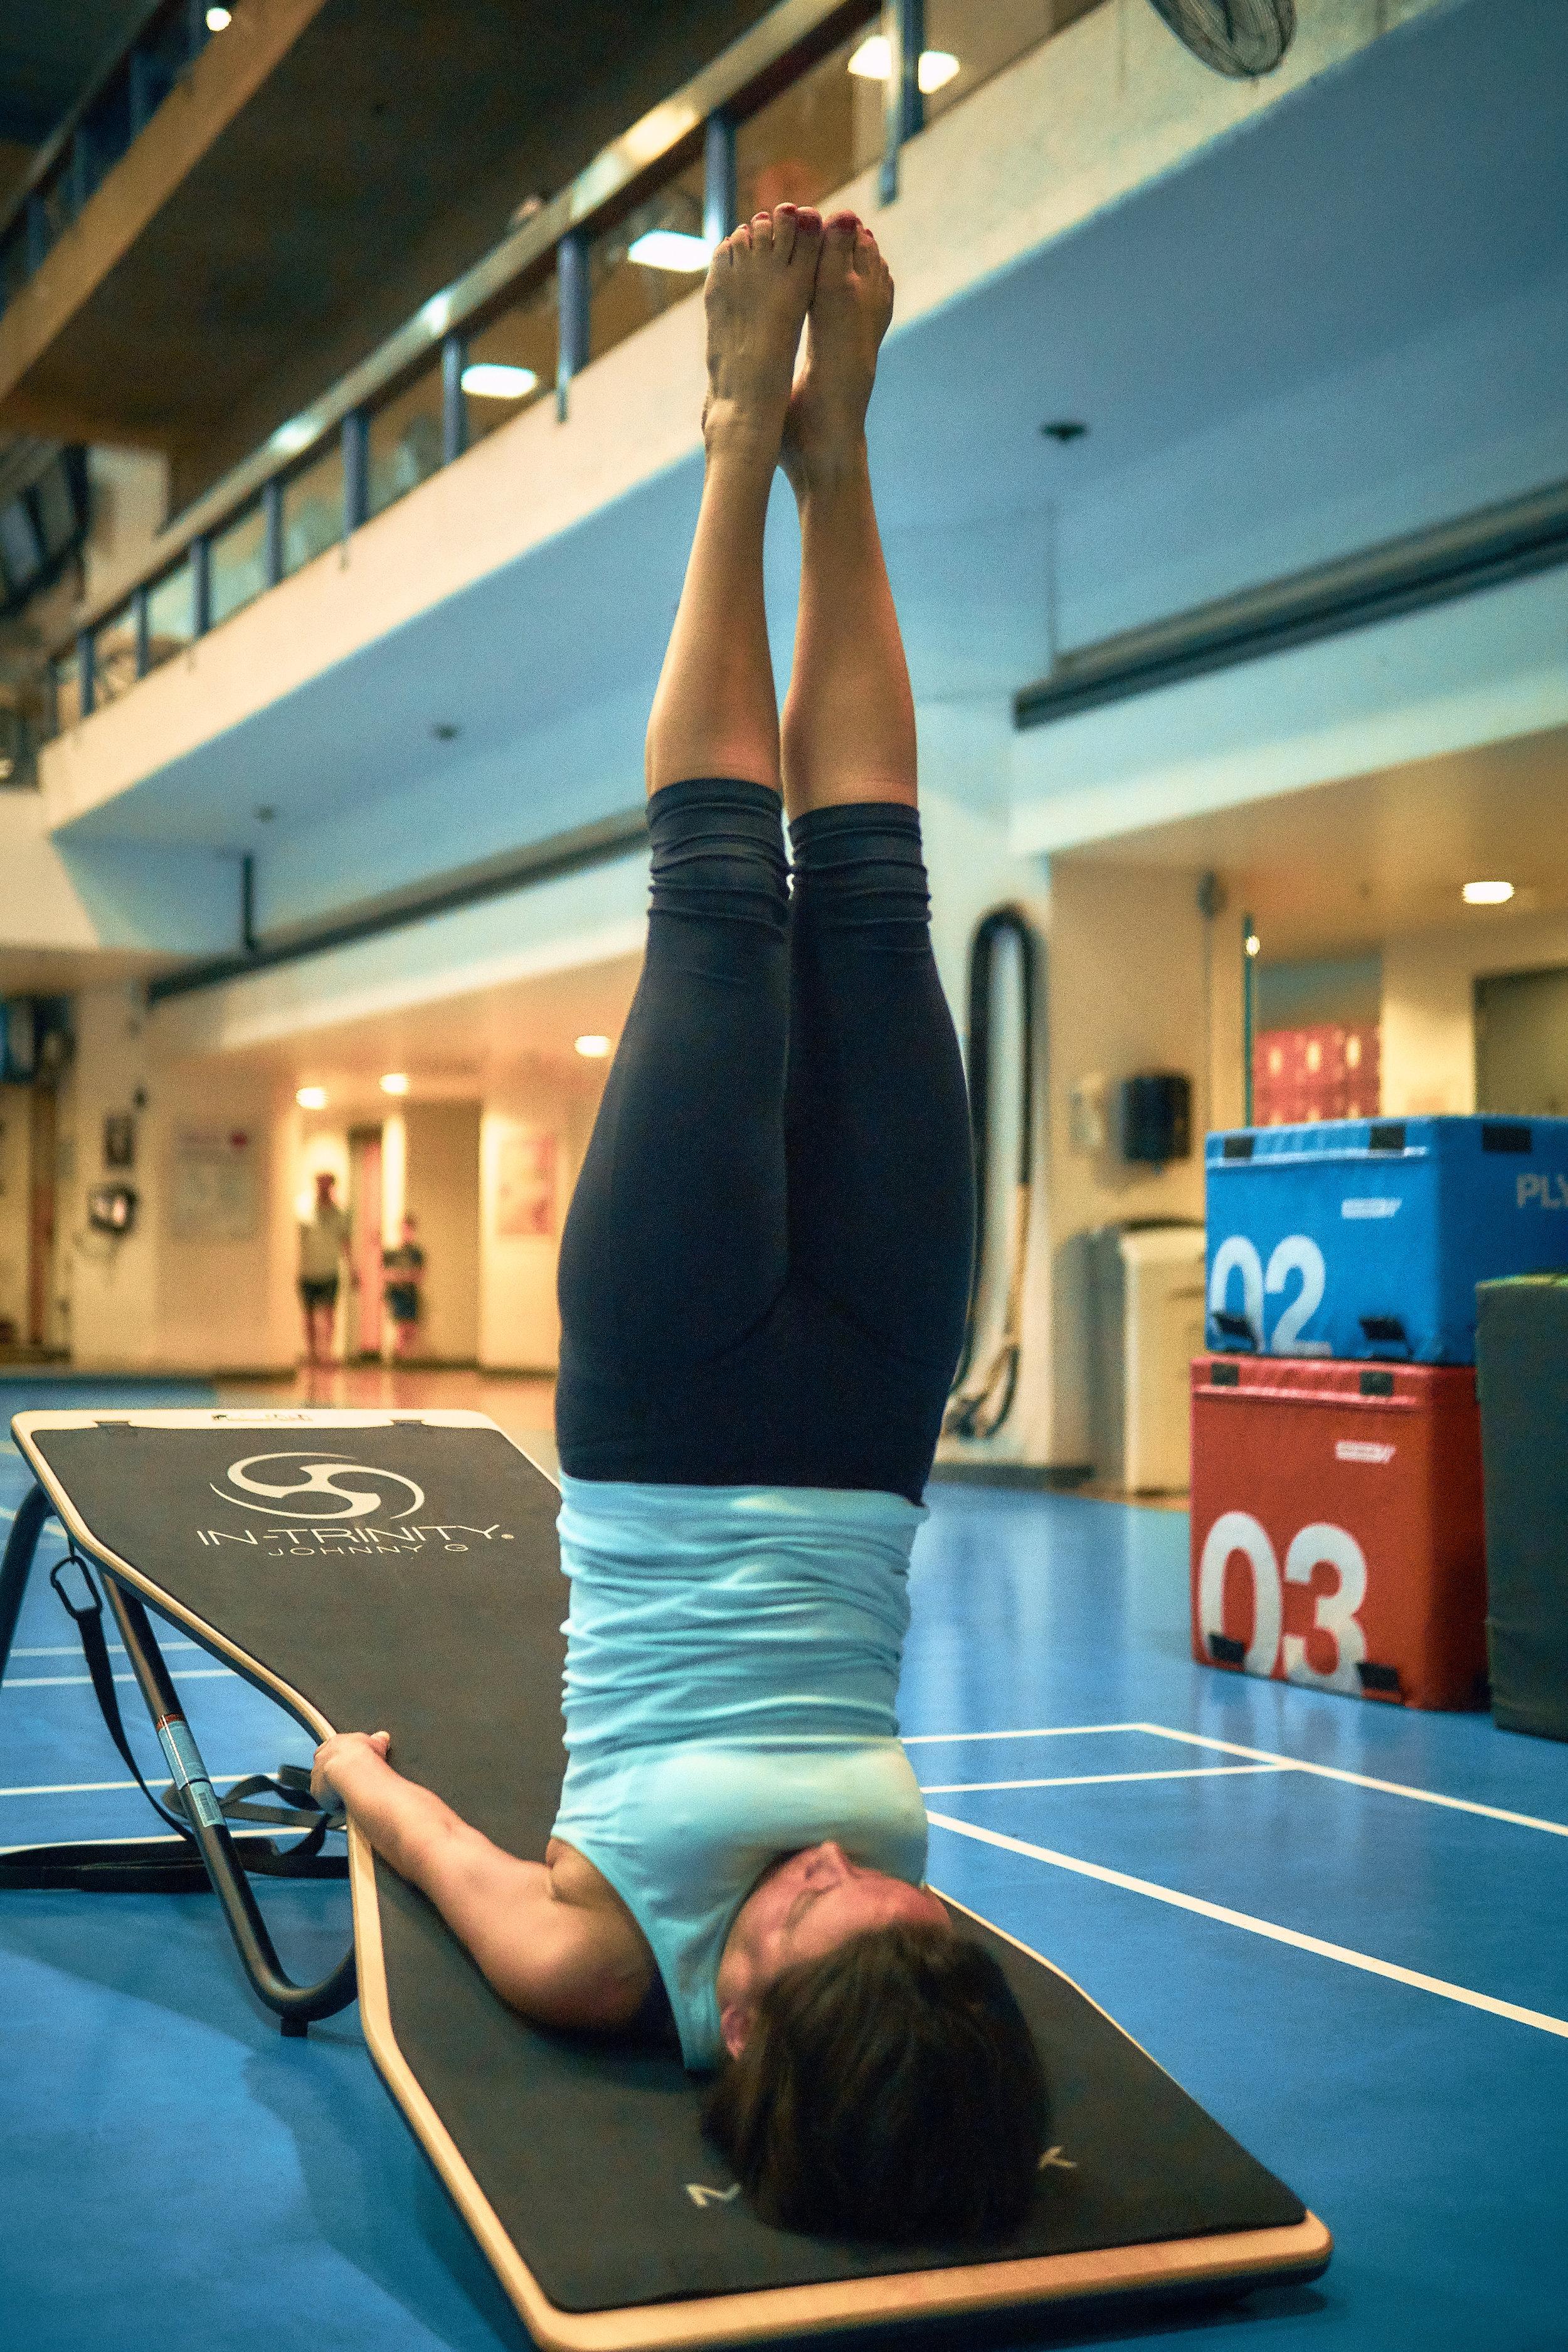 8 elements of In-Trinity - Incline - increased muscle activation, strength trainingSticks - increased use of balance, hand-eye coordination, arm strengthGravity - increased resistance or help to access deeper stretches, depending on which way you use the boardStraps - resistance, stabilisation, assistance in balance and accessing deeper stretchesErgo-grip rails - around the whole of the board, enabling different angles in stretches, ease on wrists for advanced yoga posesDecline - increased depth in stretches, use of gravity to help moving into advanced balance posesHourglass deck - different widths for different body shapes, ability to straddle board for posesNegative space - increased range of movement